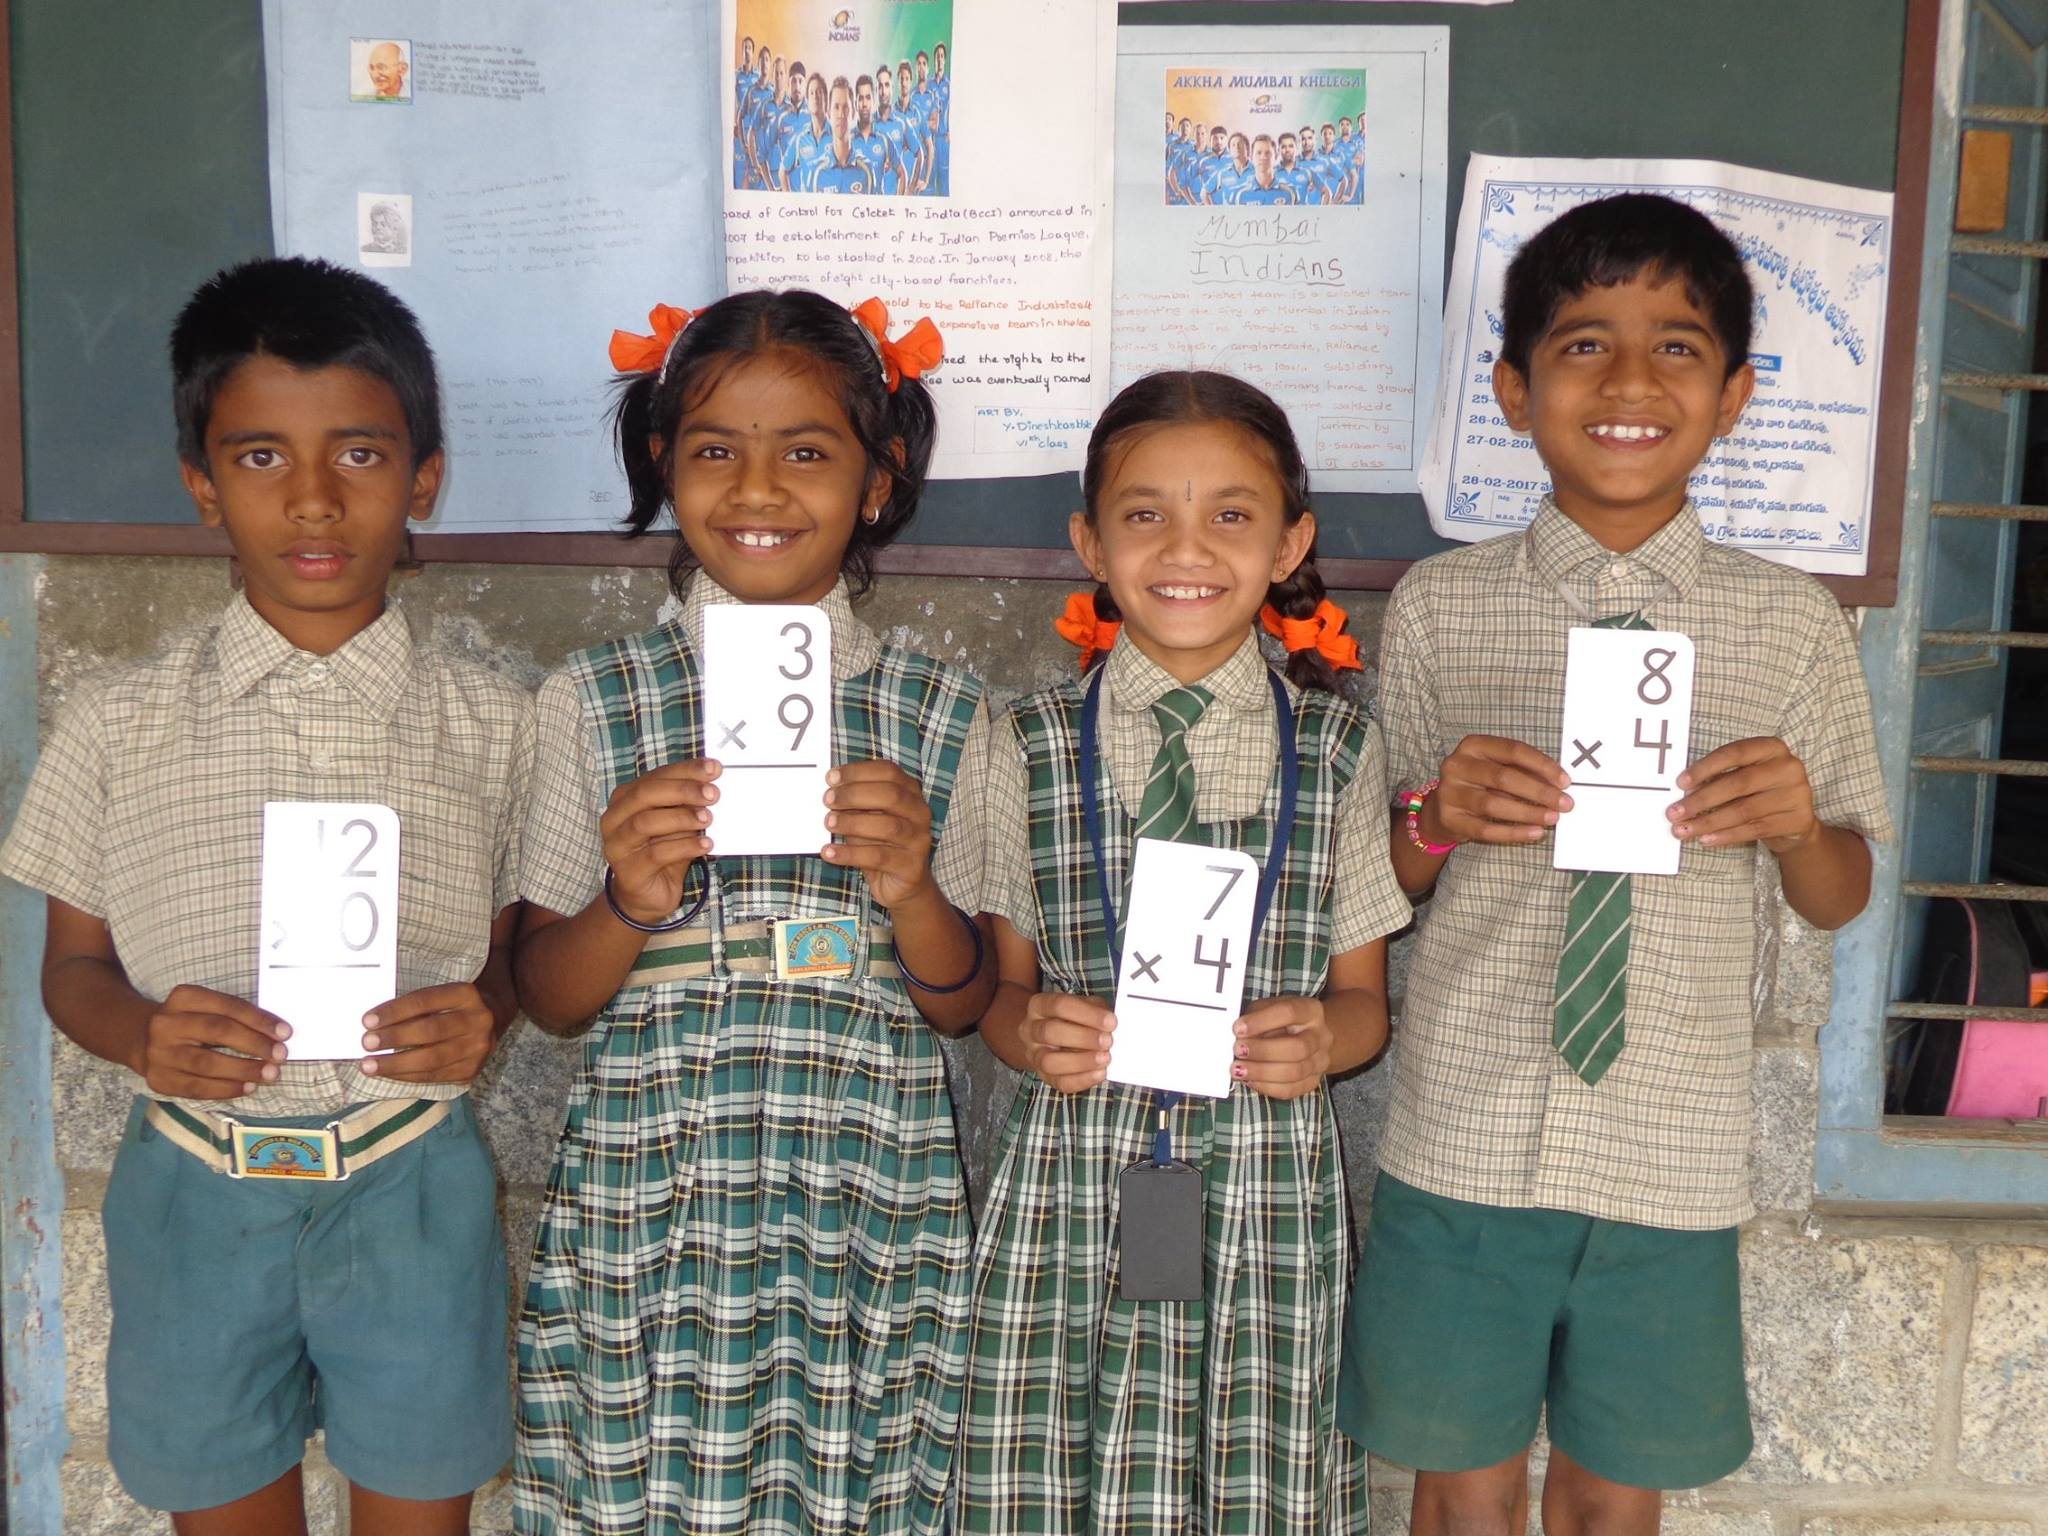 Primary Program students in India hold math materials provided by Opportunity Education, founded by Joe Ricketts